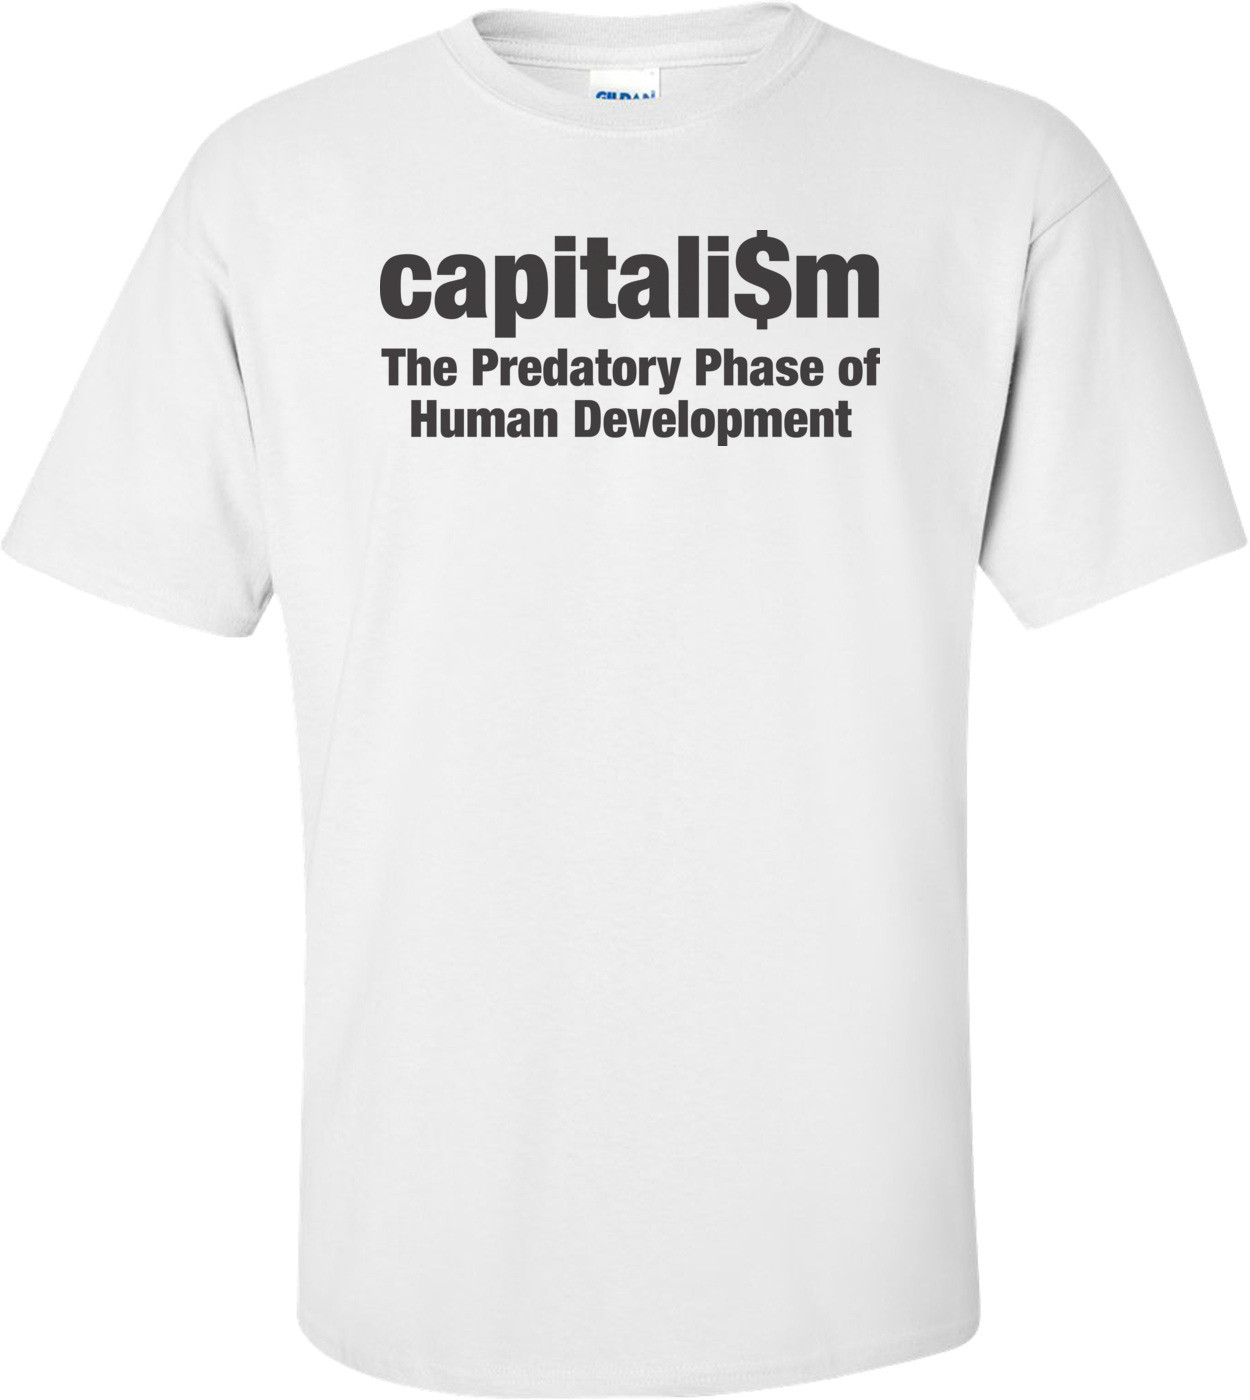 Capitalism - The Predatory Phase Of Human Development T-shirt